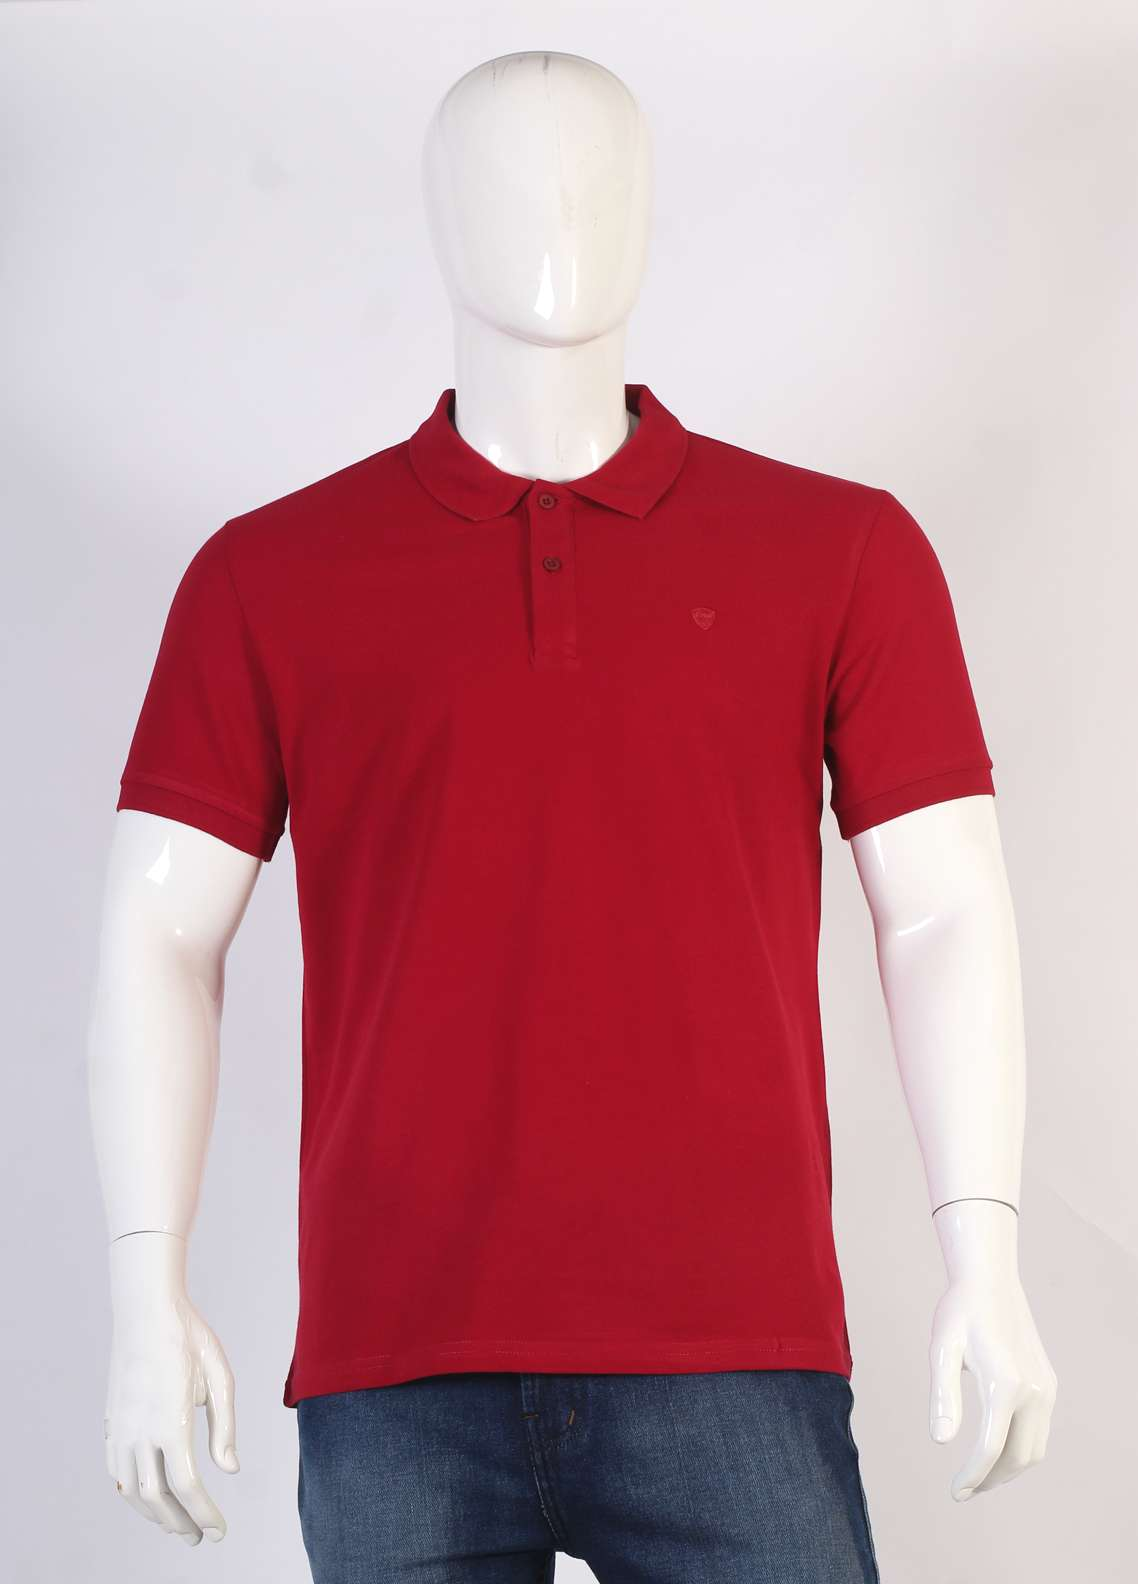 Sanaulla Exclusive Range Jersey Polo T-Shirts for Men - Maroon TKM18S 77